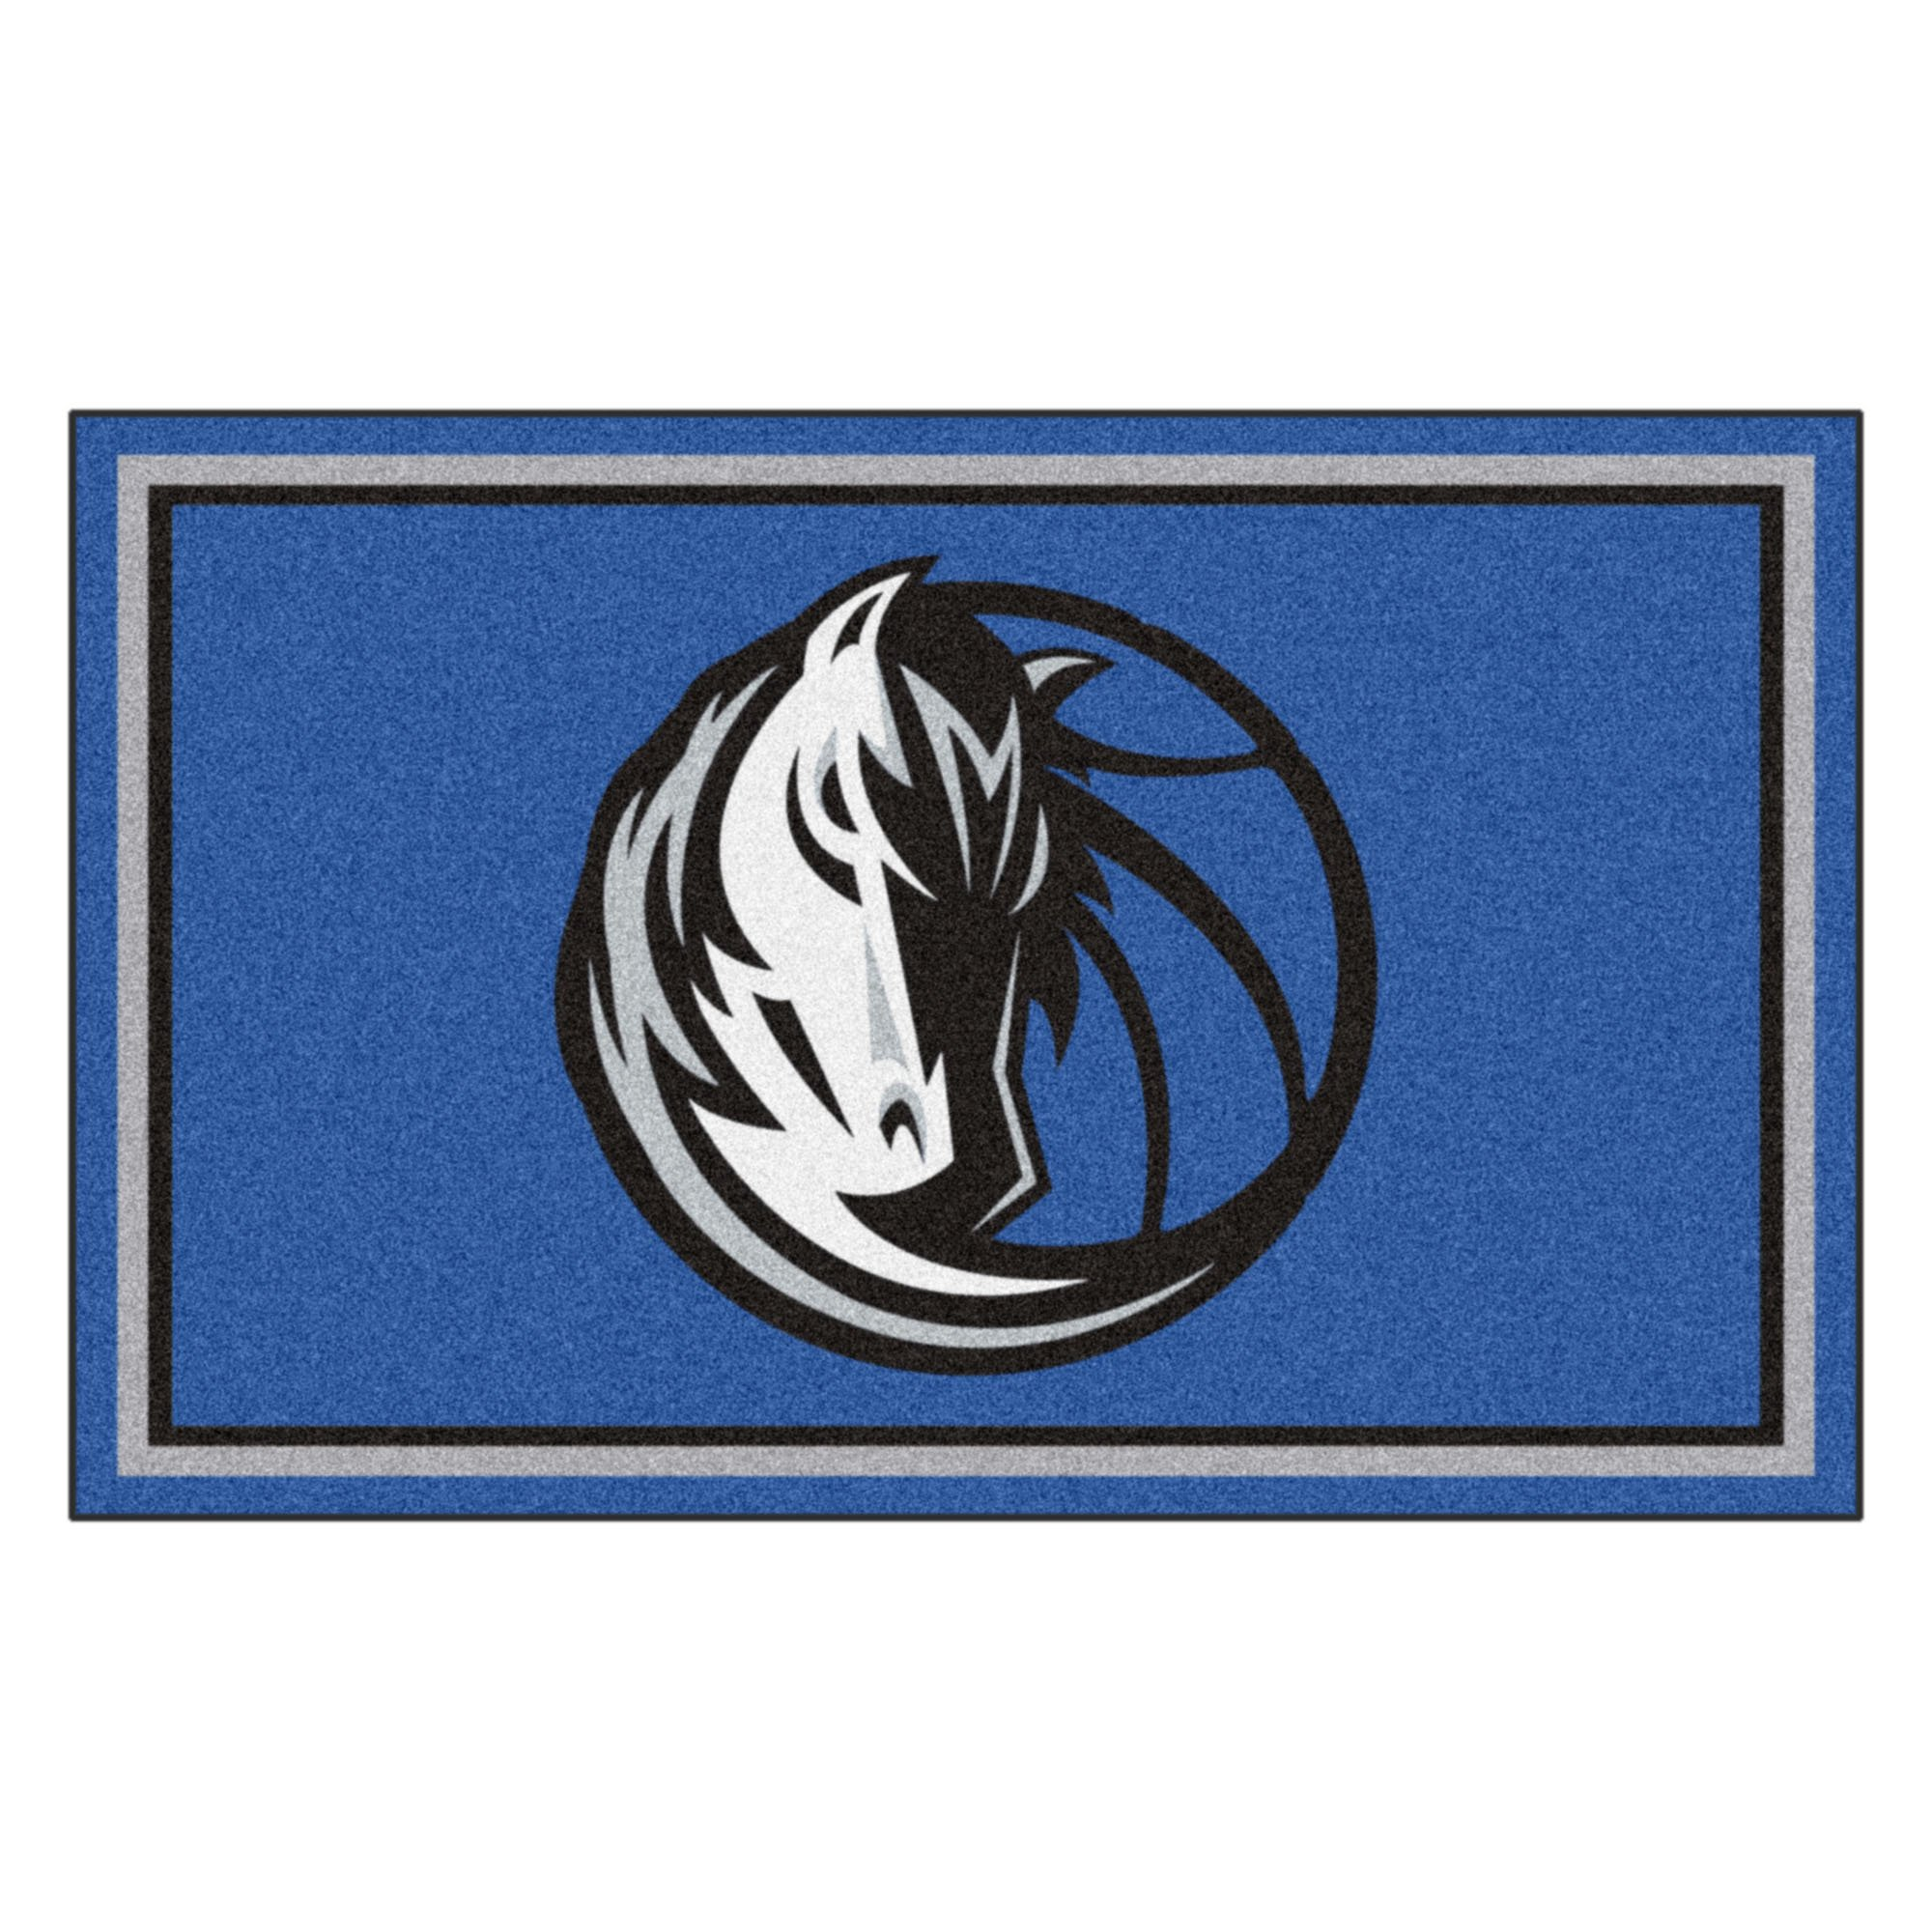 FANMATS 20424 NBA - Dallas Mavericks 4'X6' Rug, Team Color, 44''x71''